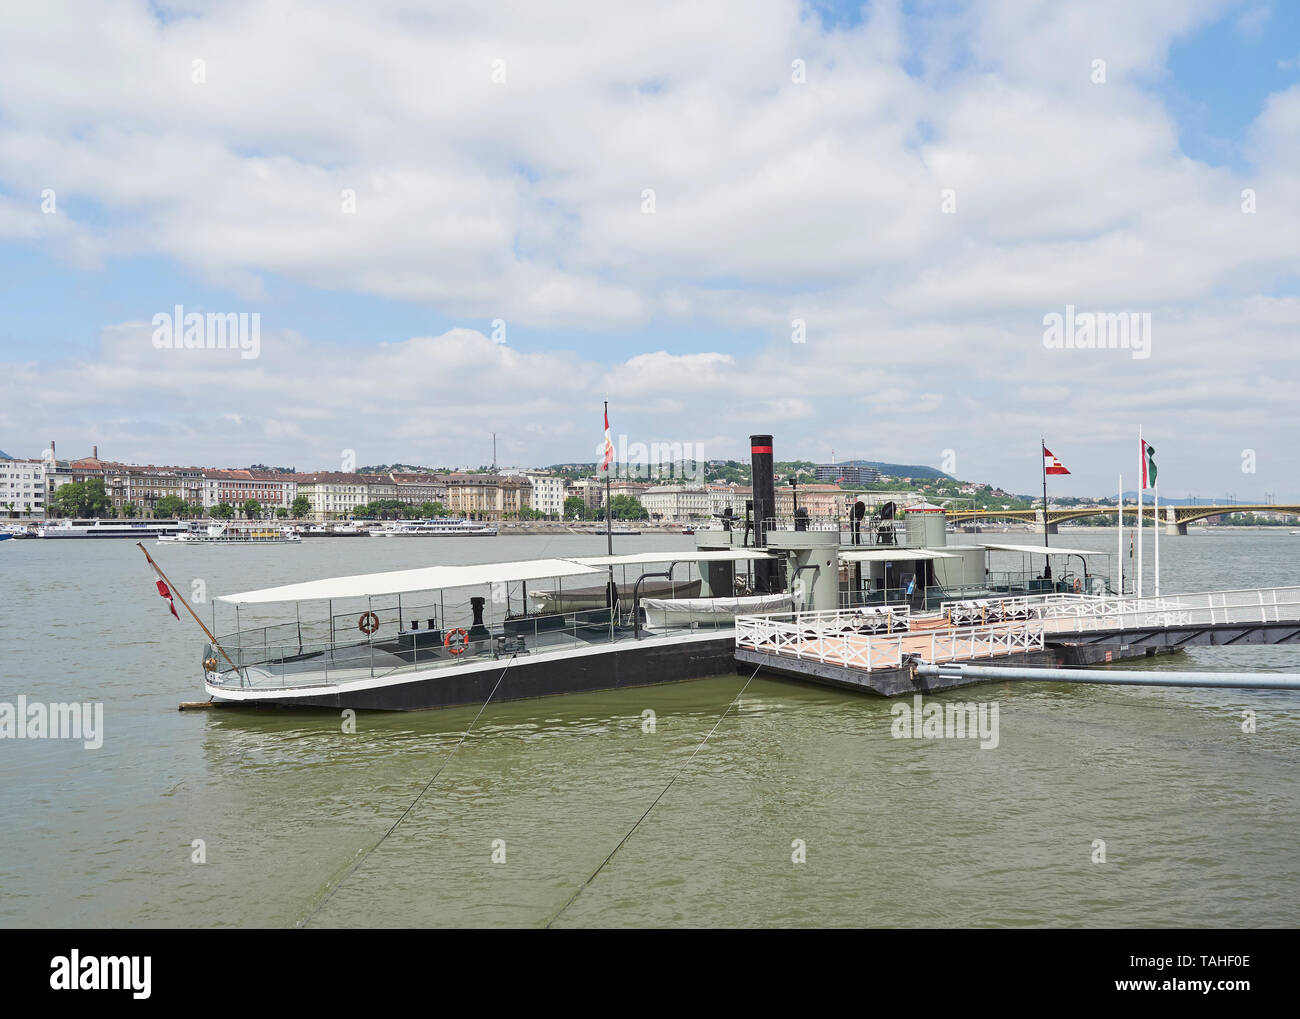 The museum ship SMS Leitha monitor warship of the Austro Hungarian Navy moored in the Danube outside the Budapest parliament building Hungary - Stock Image